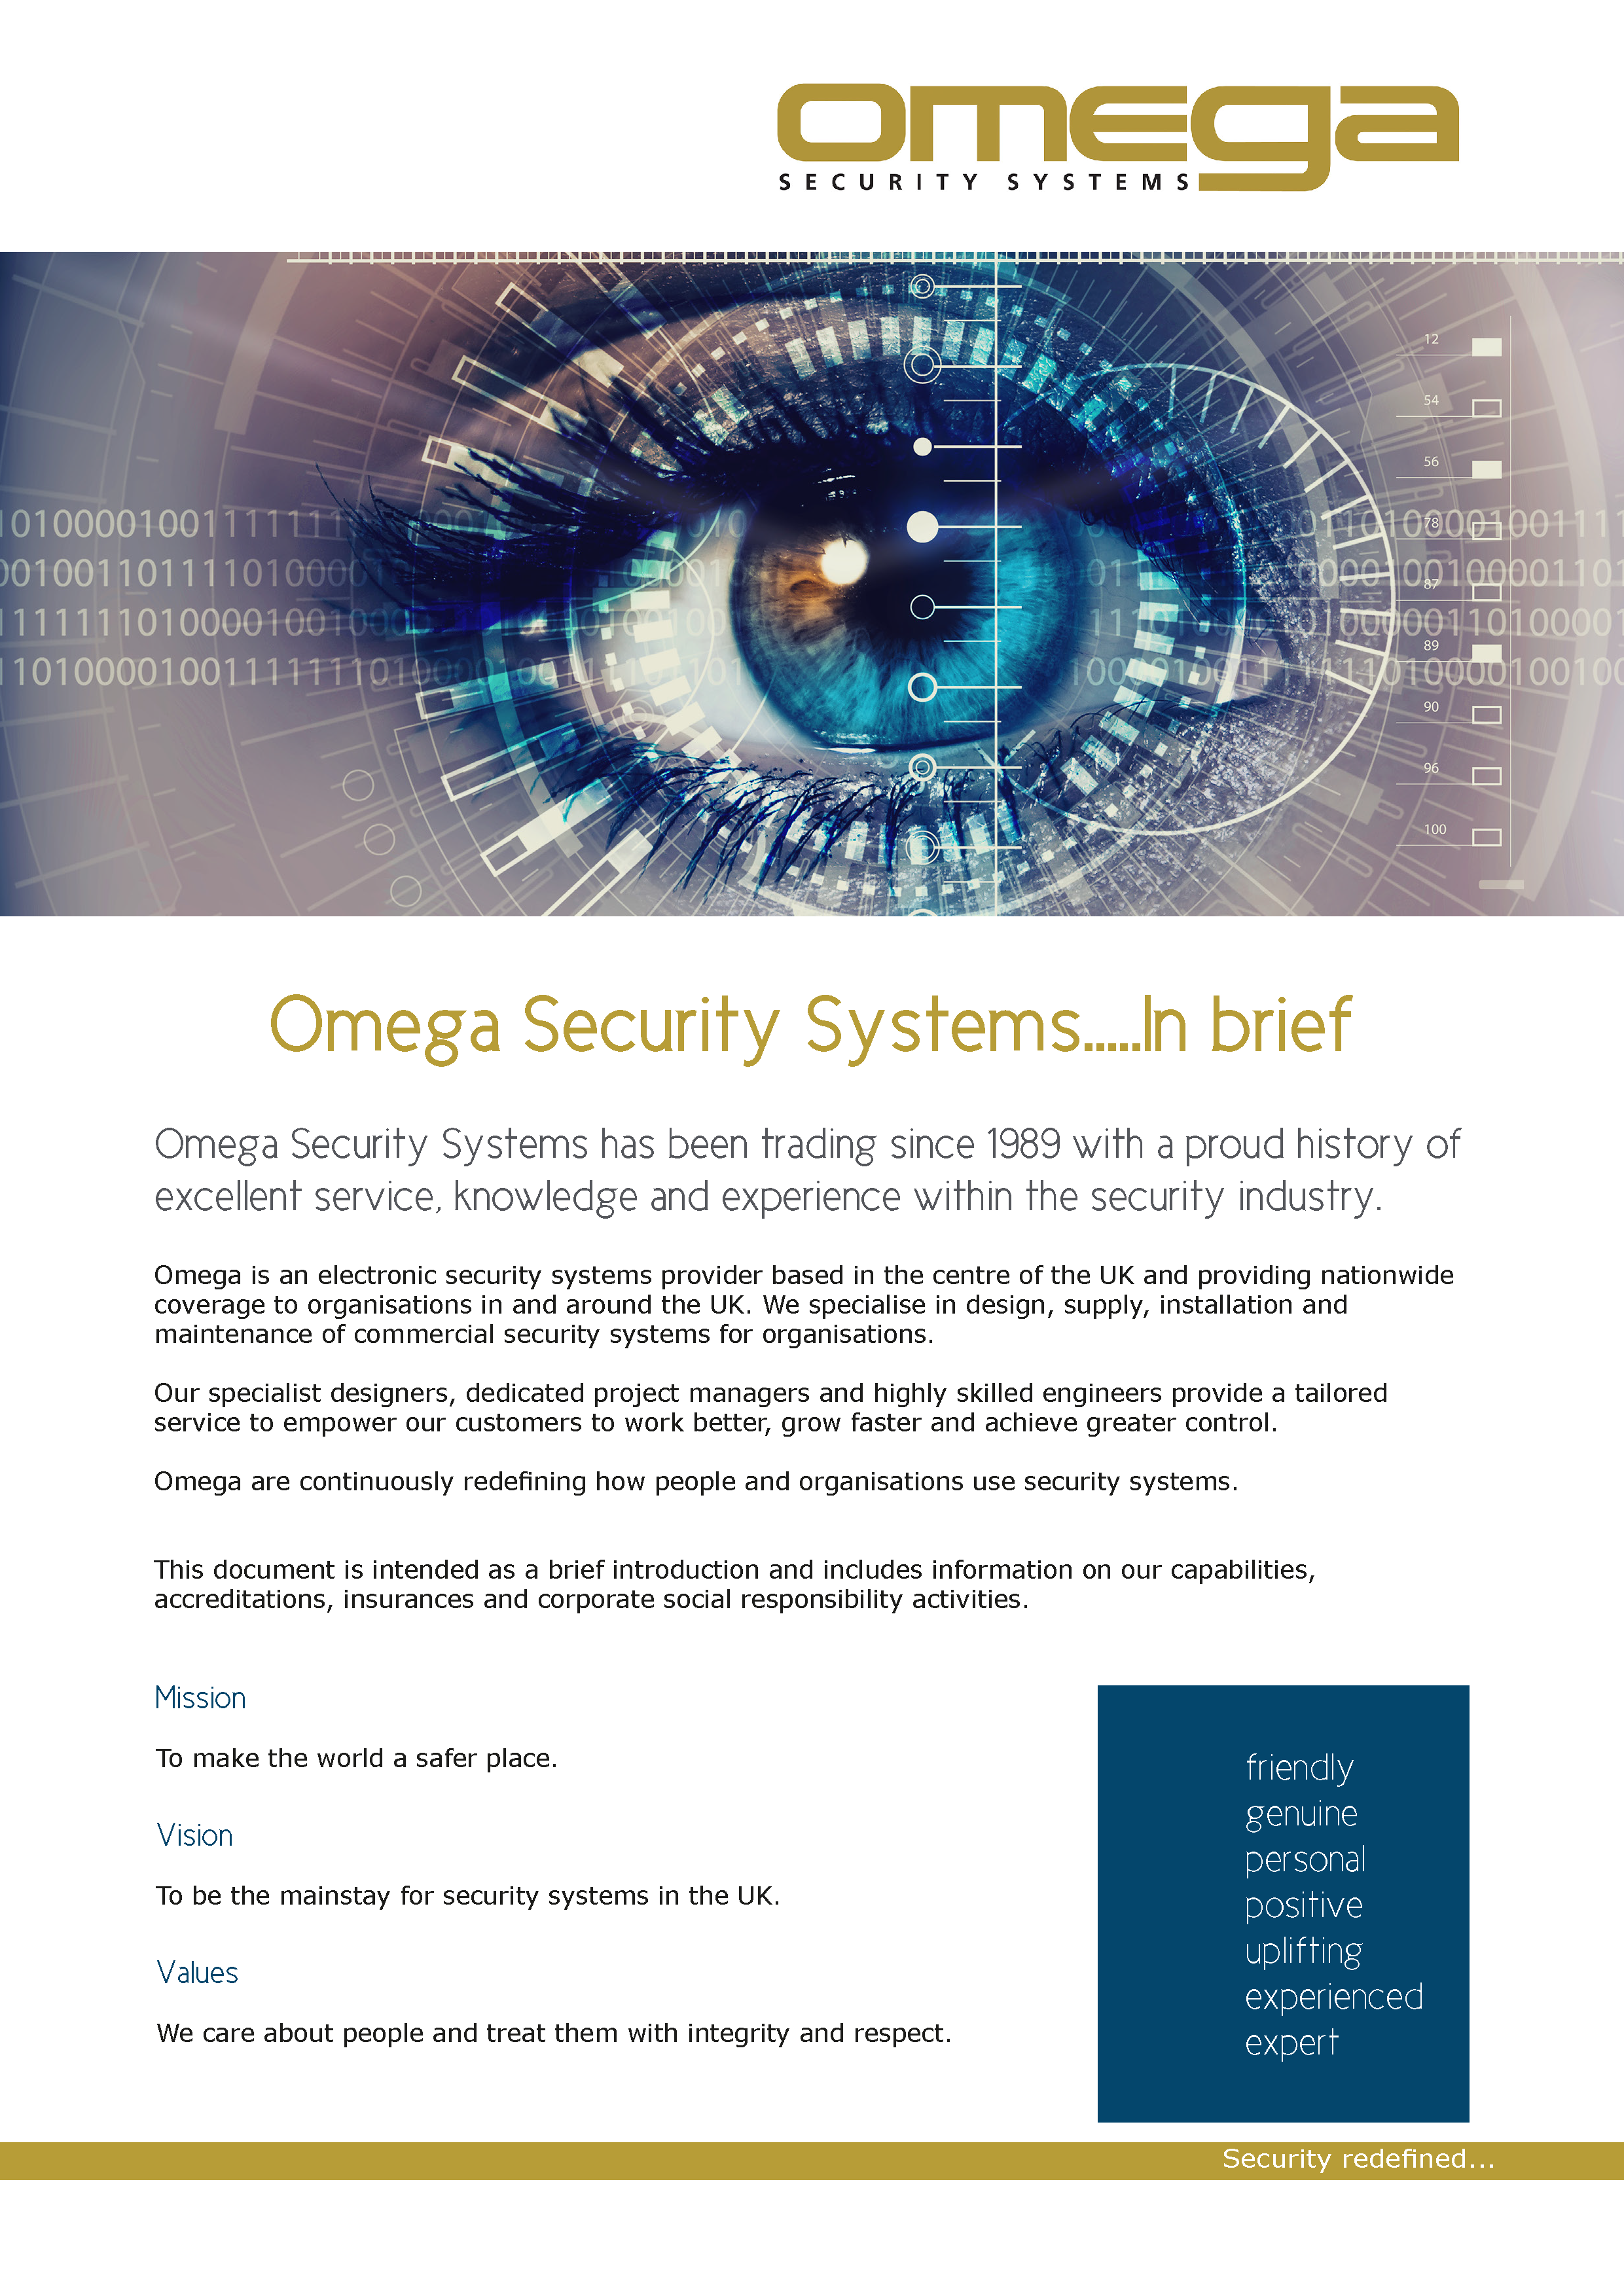 Omega Security Systems in brief document.